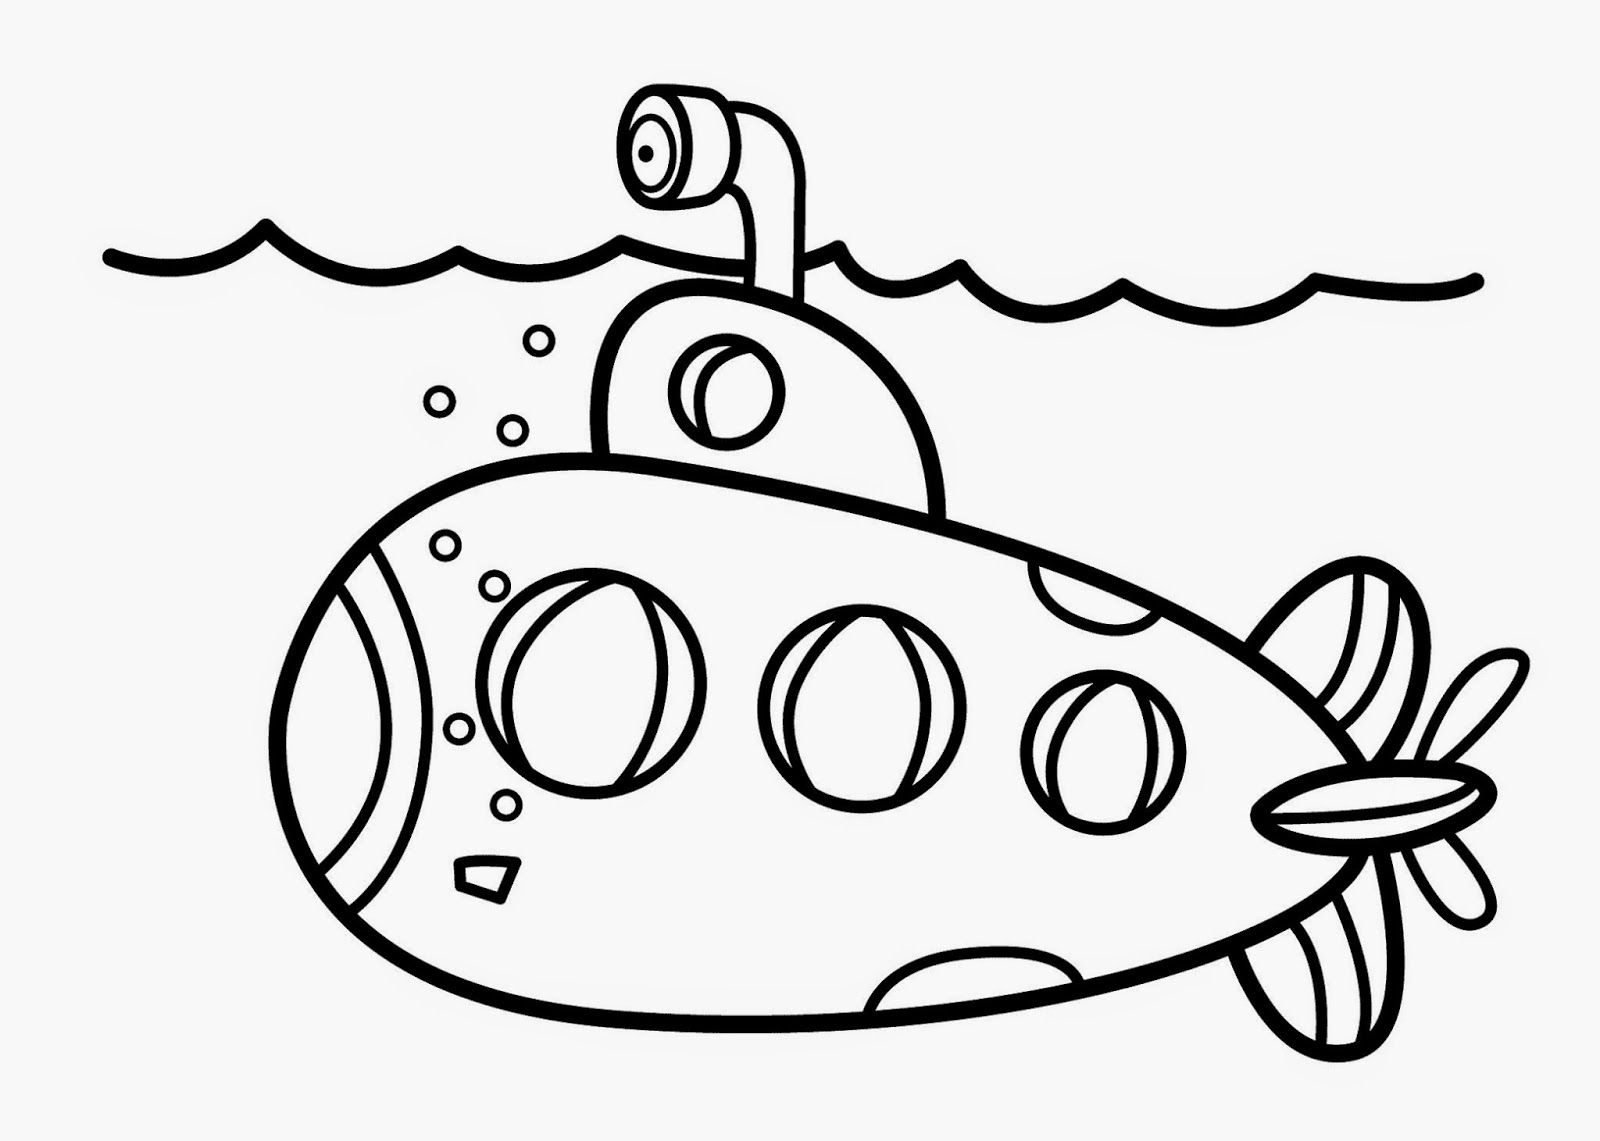 Kids Under 7: Vehicles Coloring Pages | Learning | Pinterest